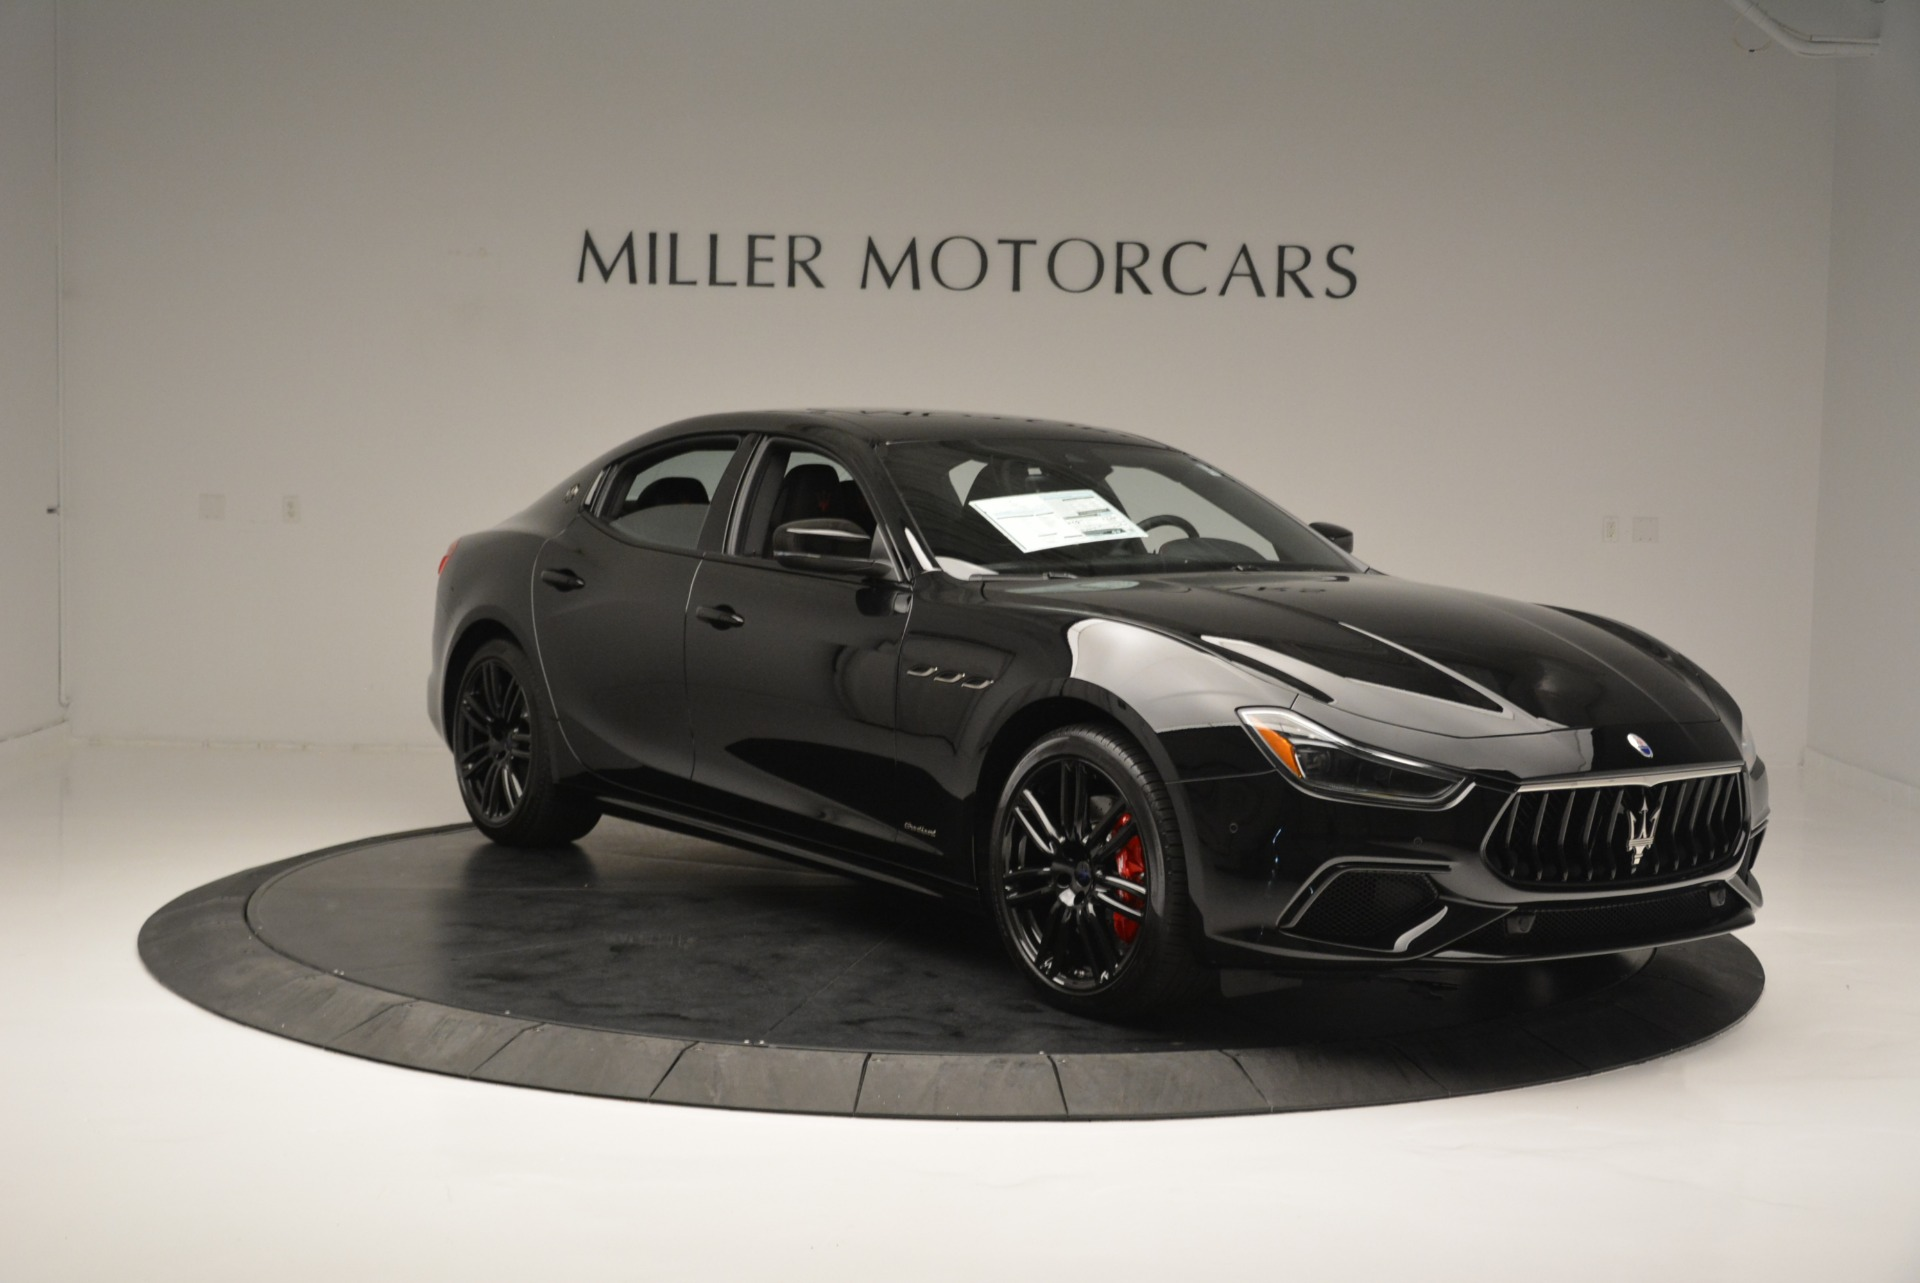 New 2018 Maserati Ghibli SQ4 GranSport Nerissimo For Sale In Westport, CT 2366_p11